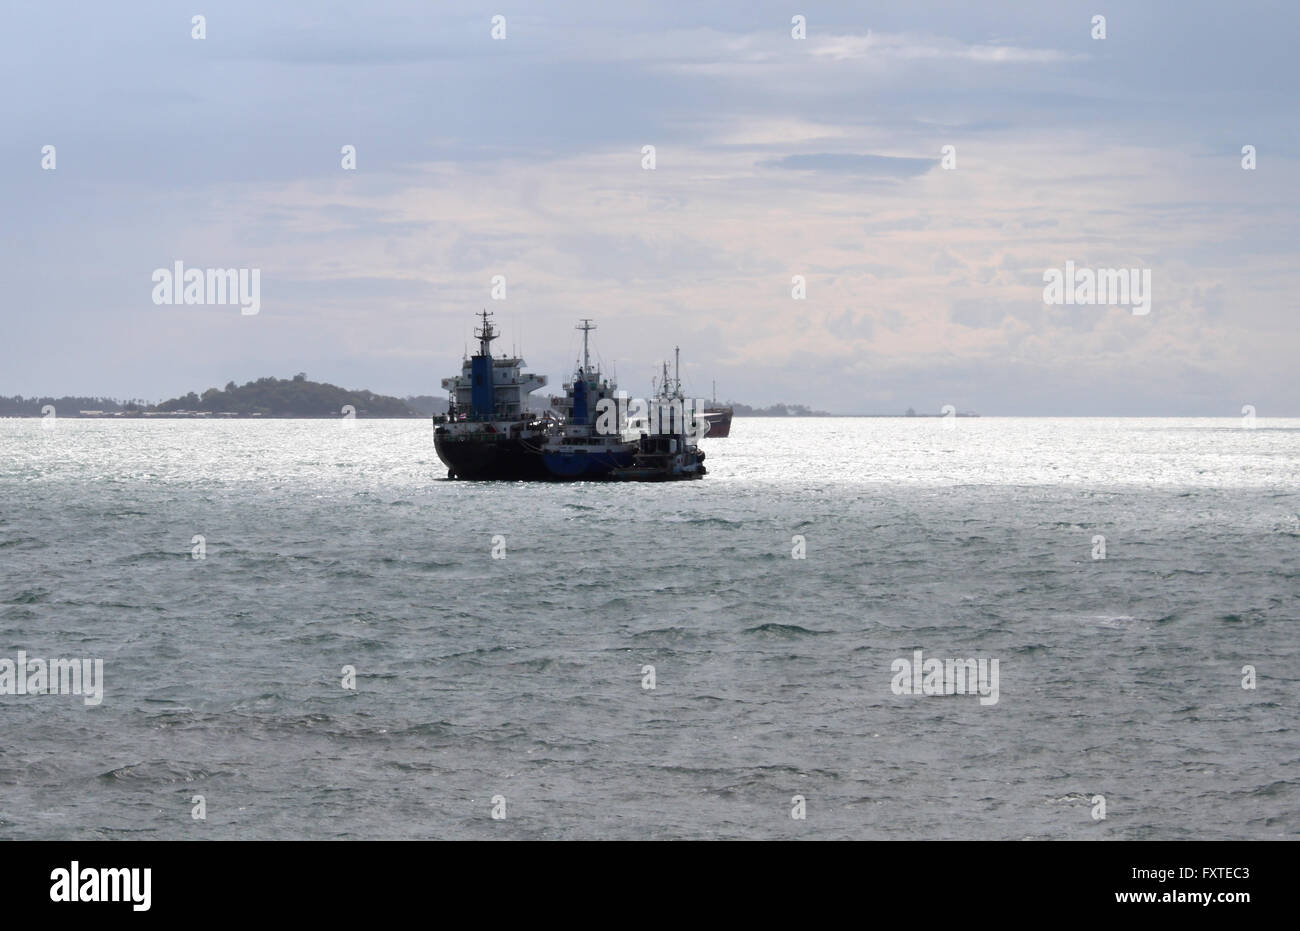 Seascape with three ships moored together in the ocean - Stock Image